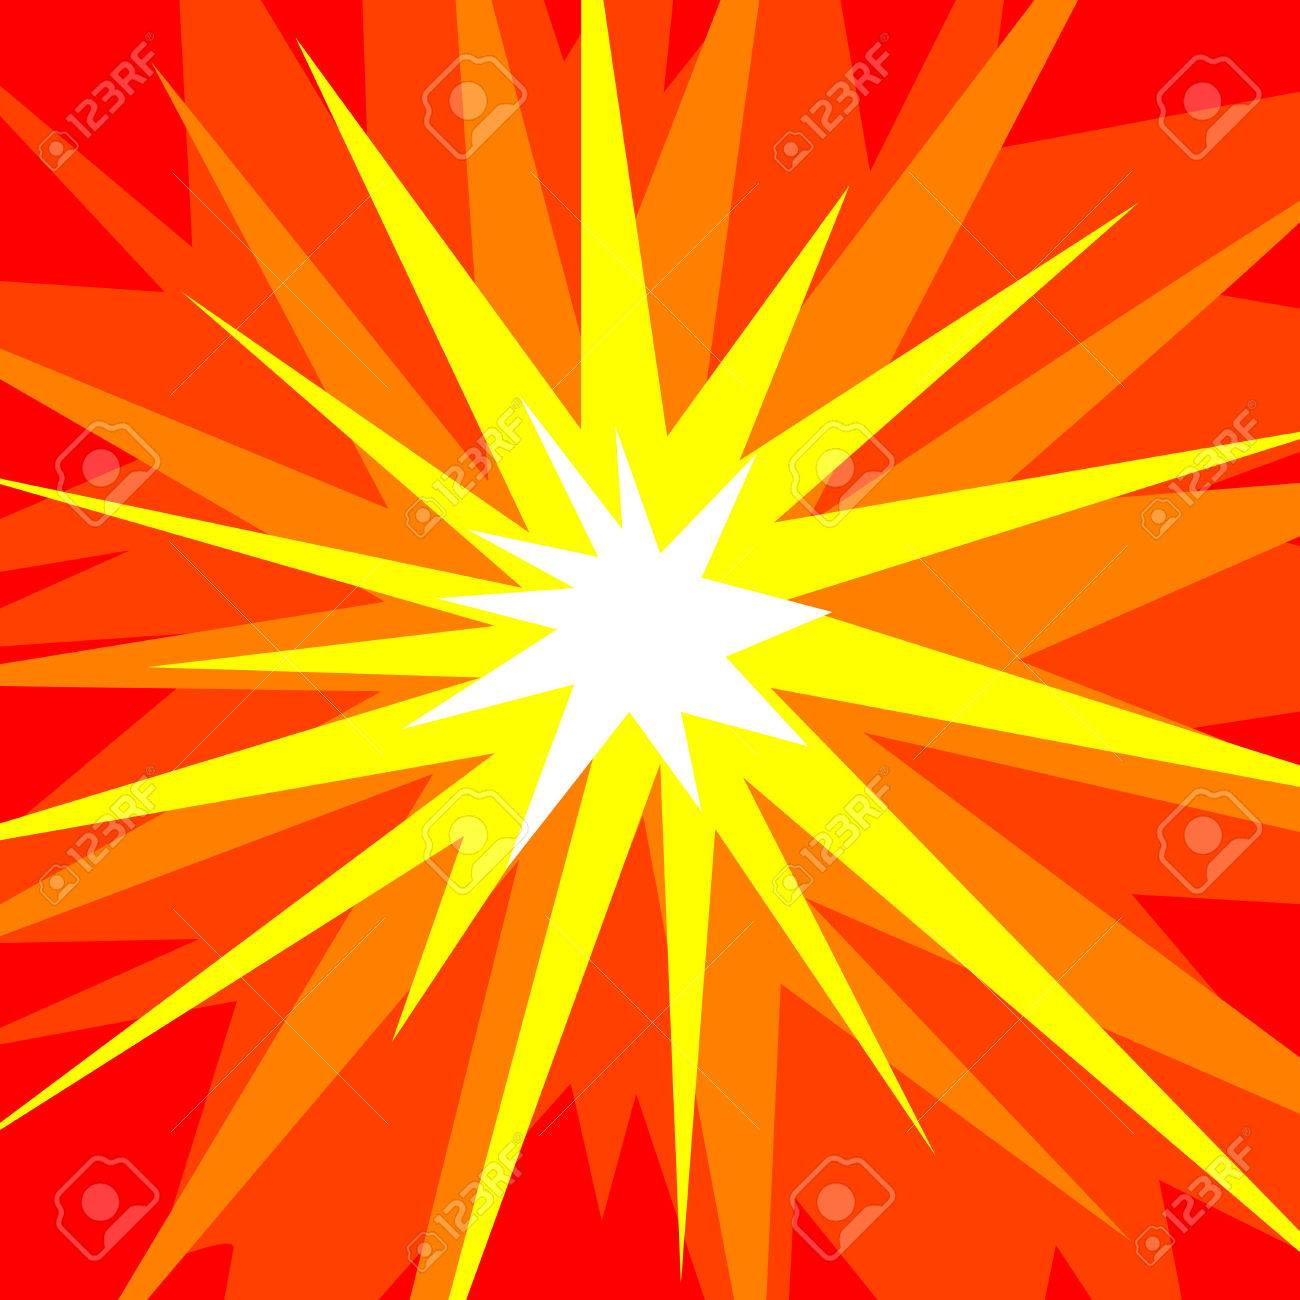 Abstract vector illustration of a cartoonstyle explosion in red, orange, yellow and white Stock Vector - 5597322